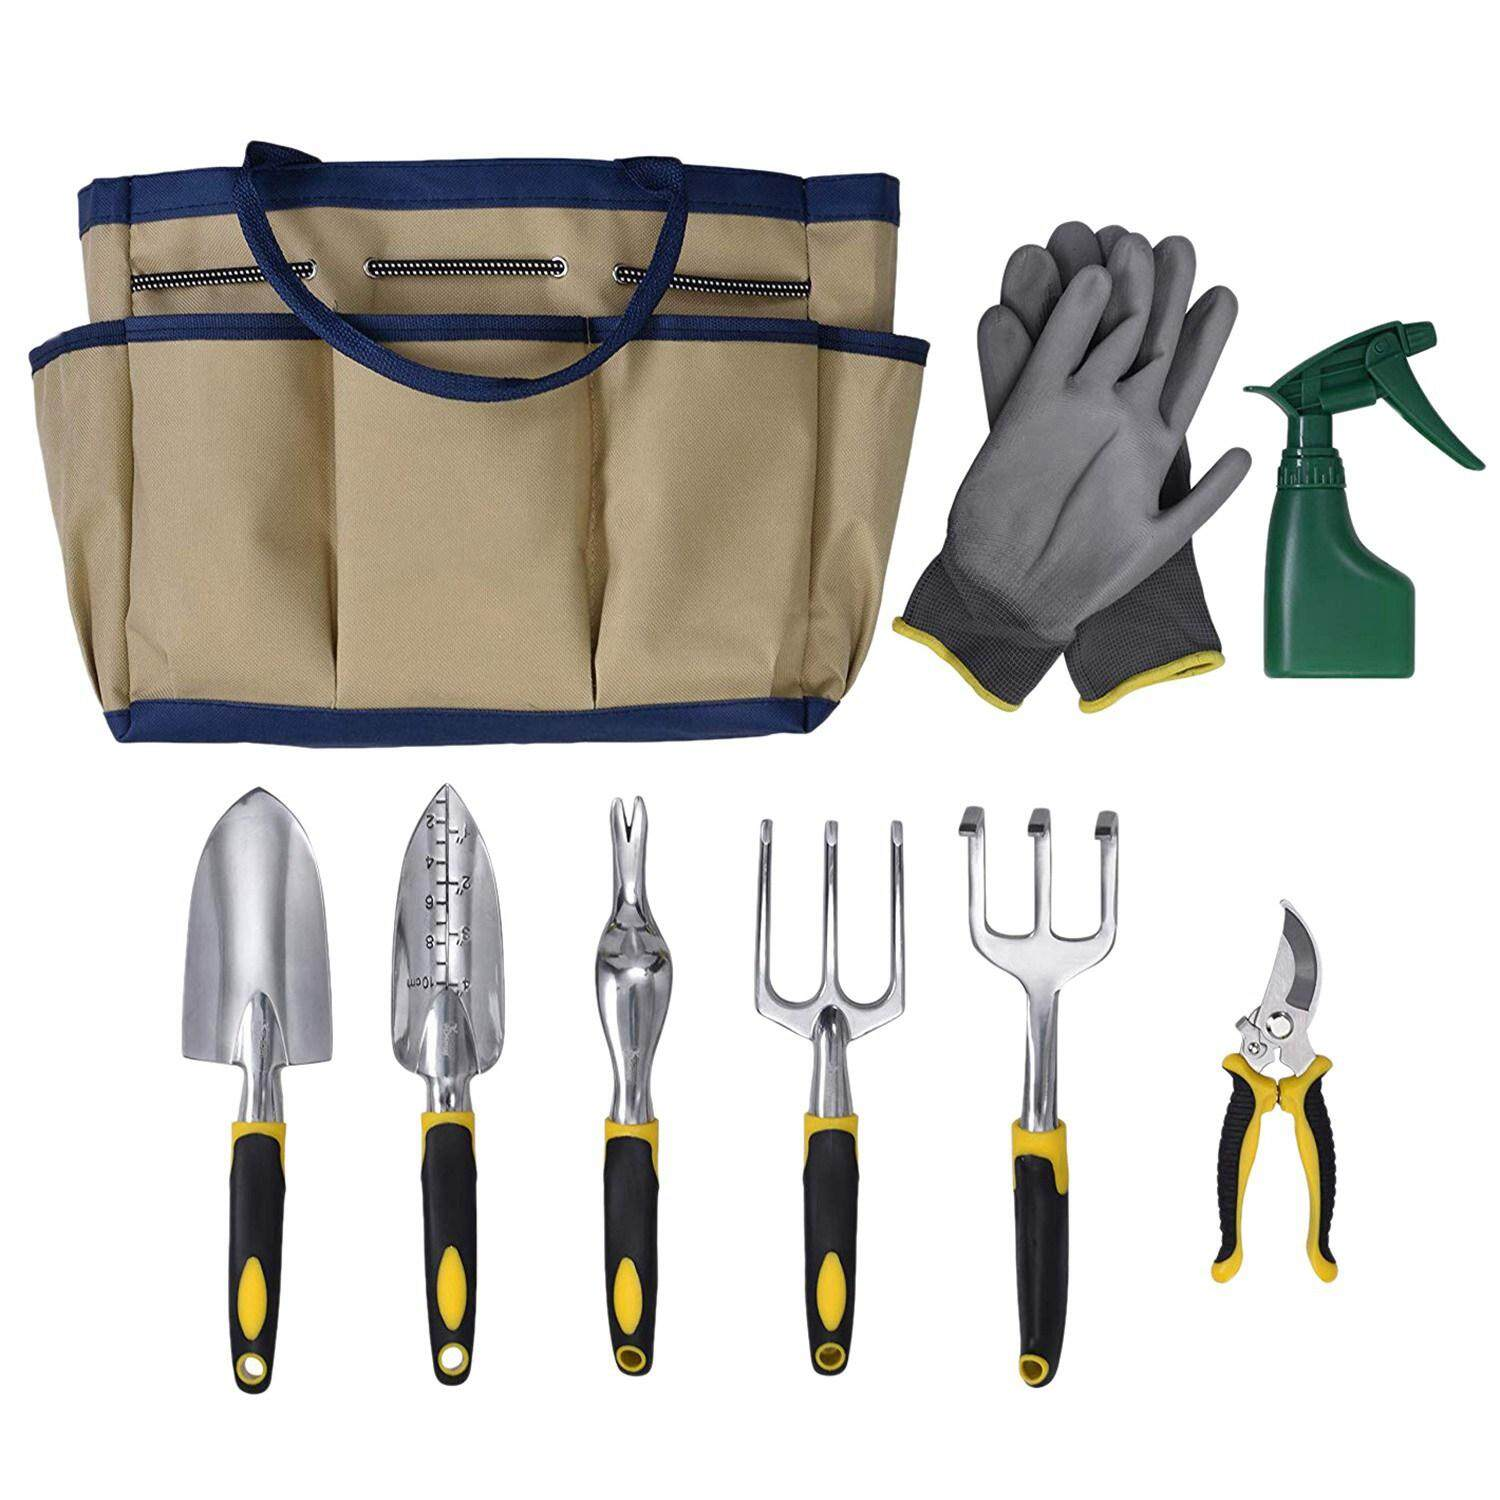 9 Piece Garden Tool Set Includes Garden Tote Bag And 6x Hand Tools